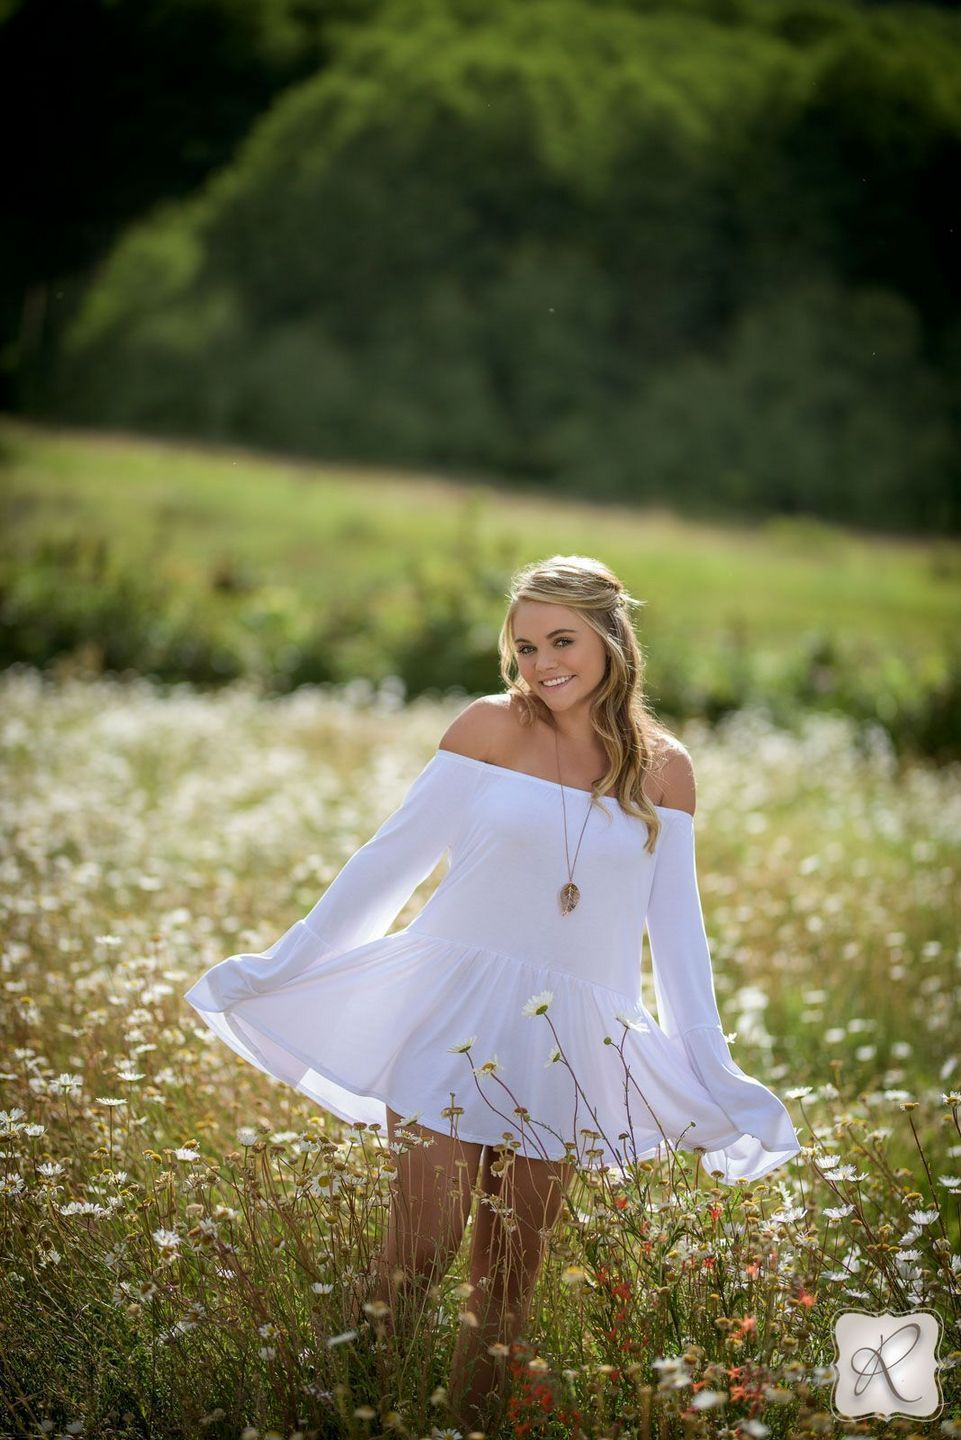 177 best images about Senior Picture Ideas For Girls on ... |Senior Picture Ideas For Girls Outside